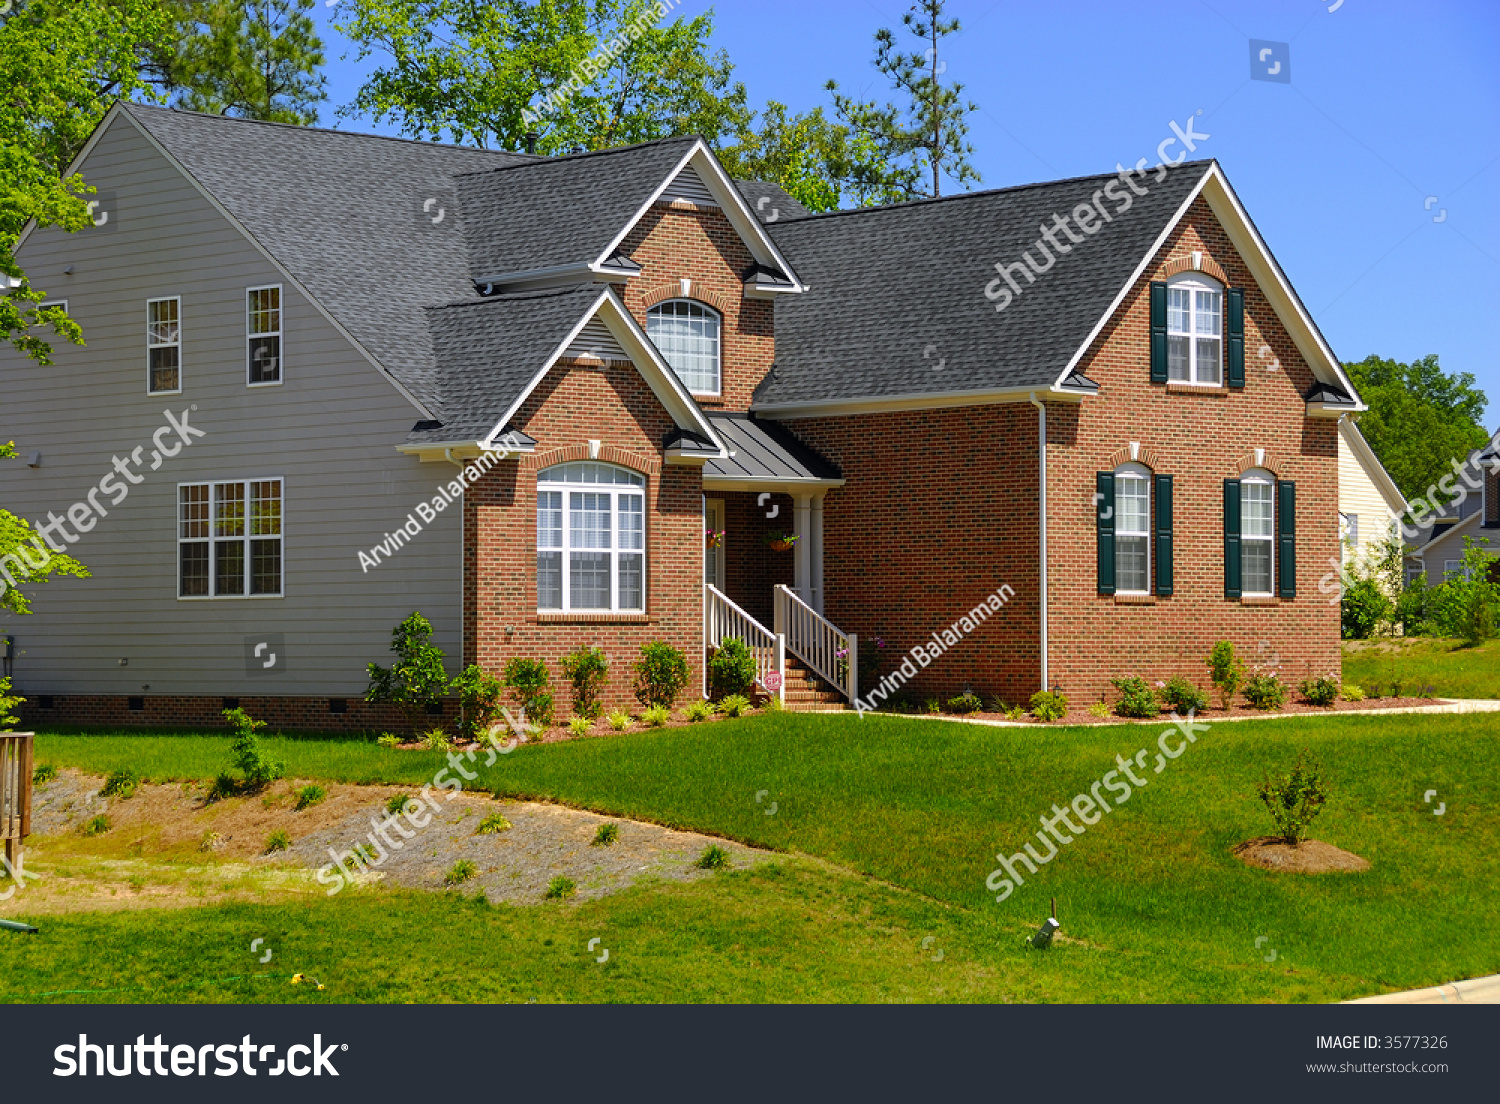 Beautiful Colonial House Americal City Stock Photo 3577326